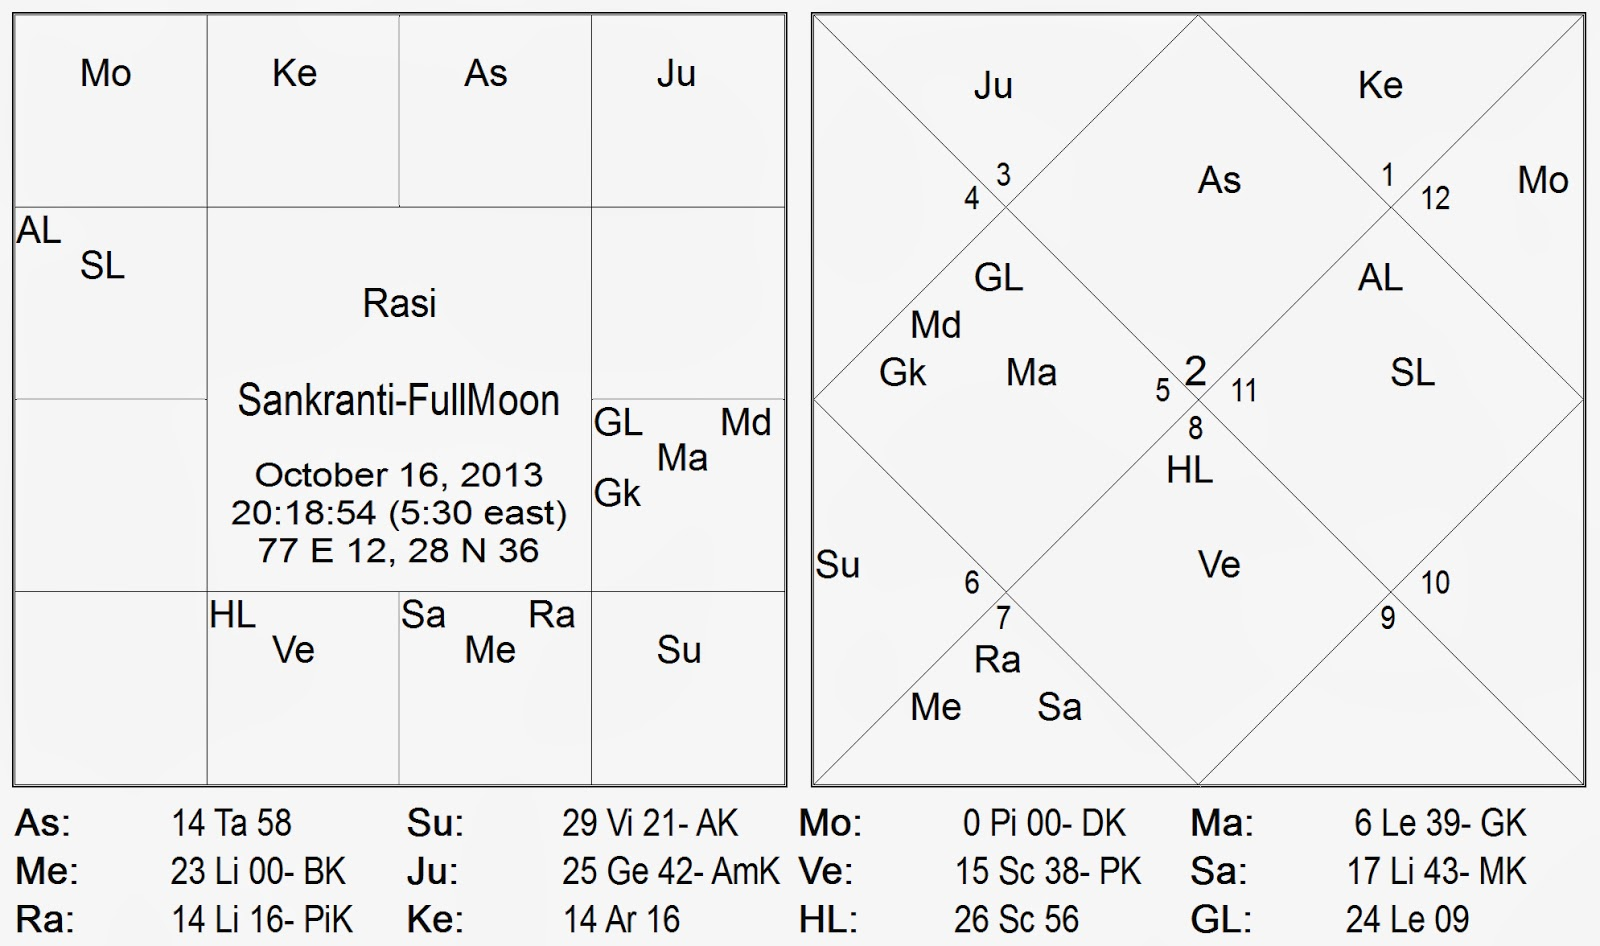 The vedic horoscope given above depicts the movement of the transit moon into pisces late evening on the 16th of october 2013